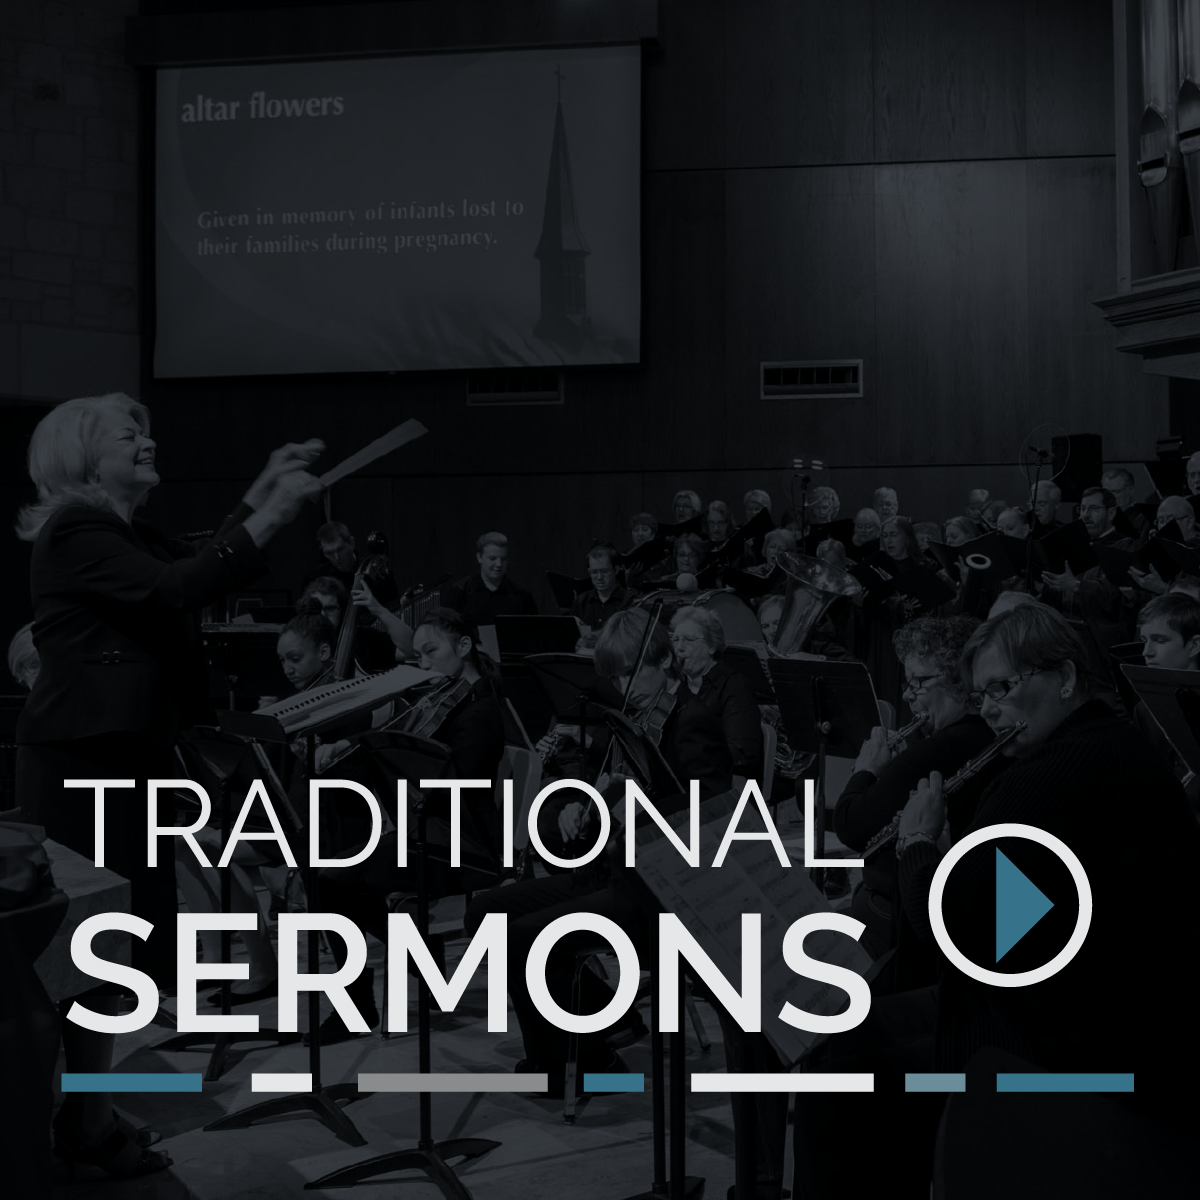 Traditional Sermons